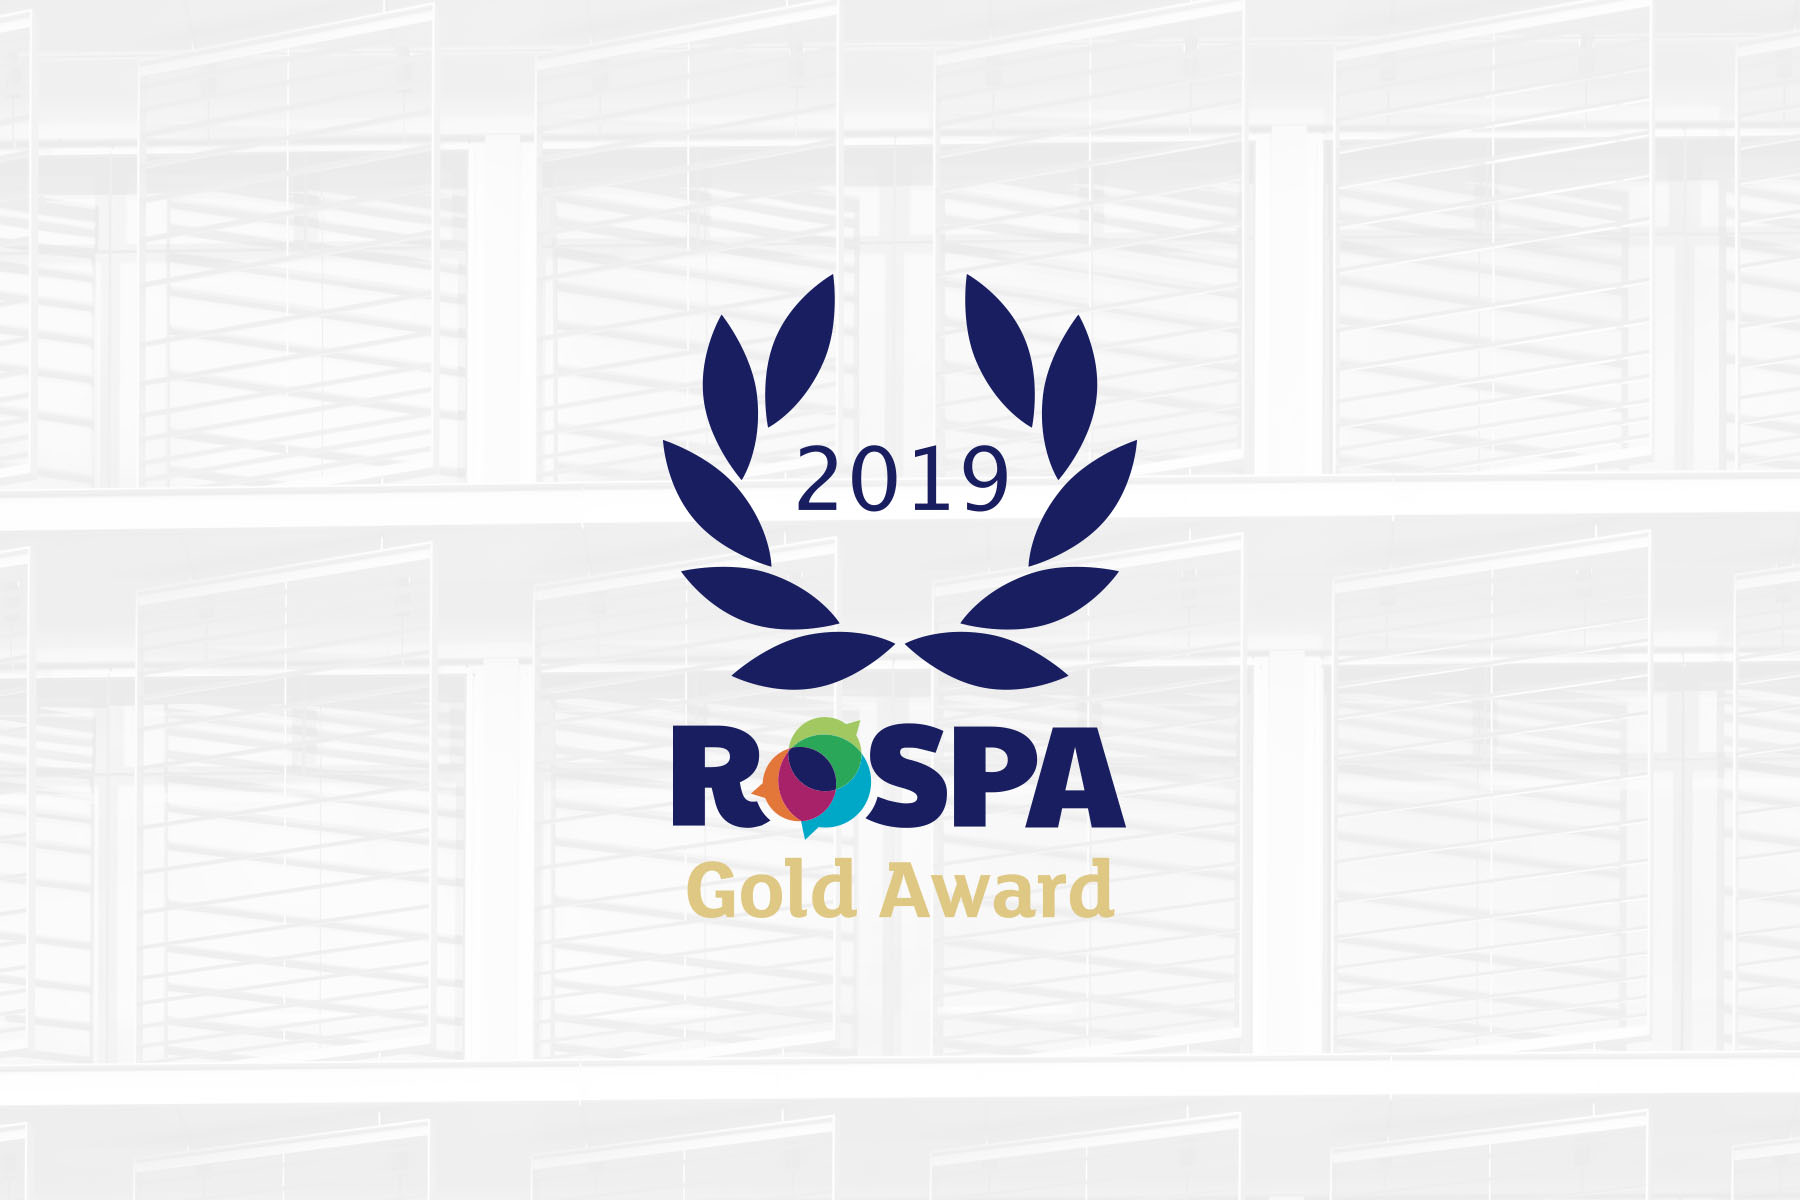 McLaren awarded RoSPA Gold Award for health and safety practices